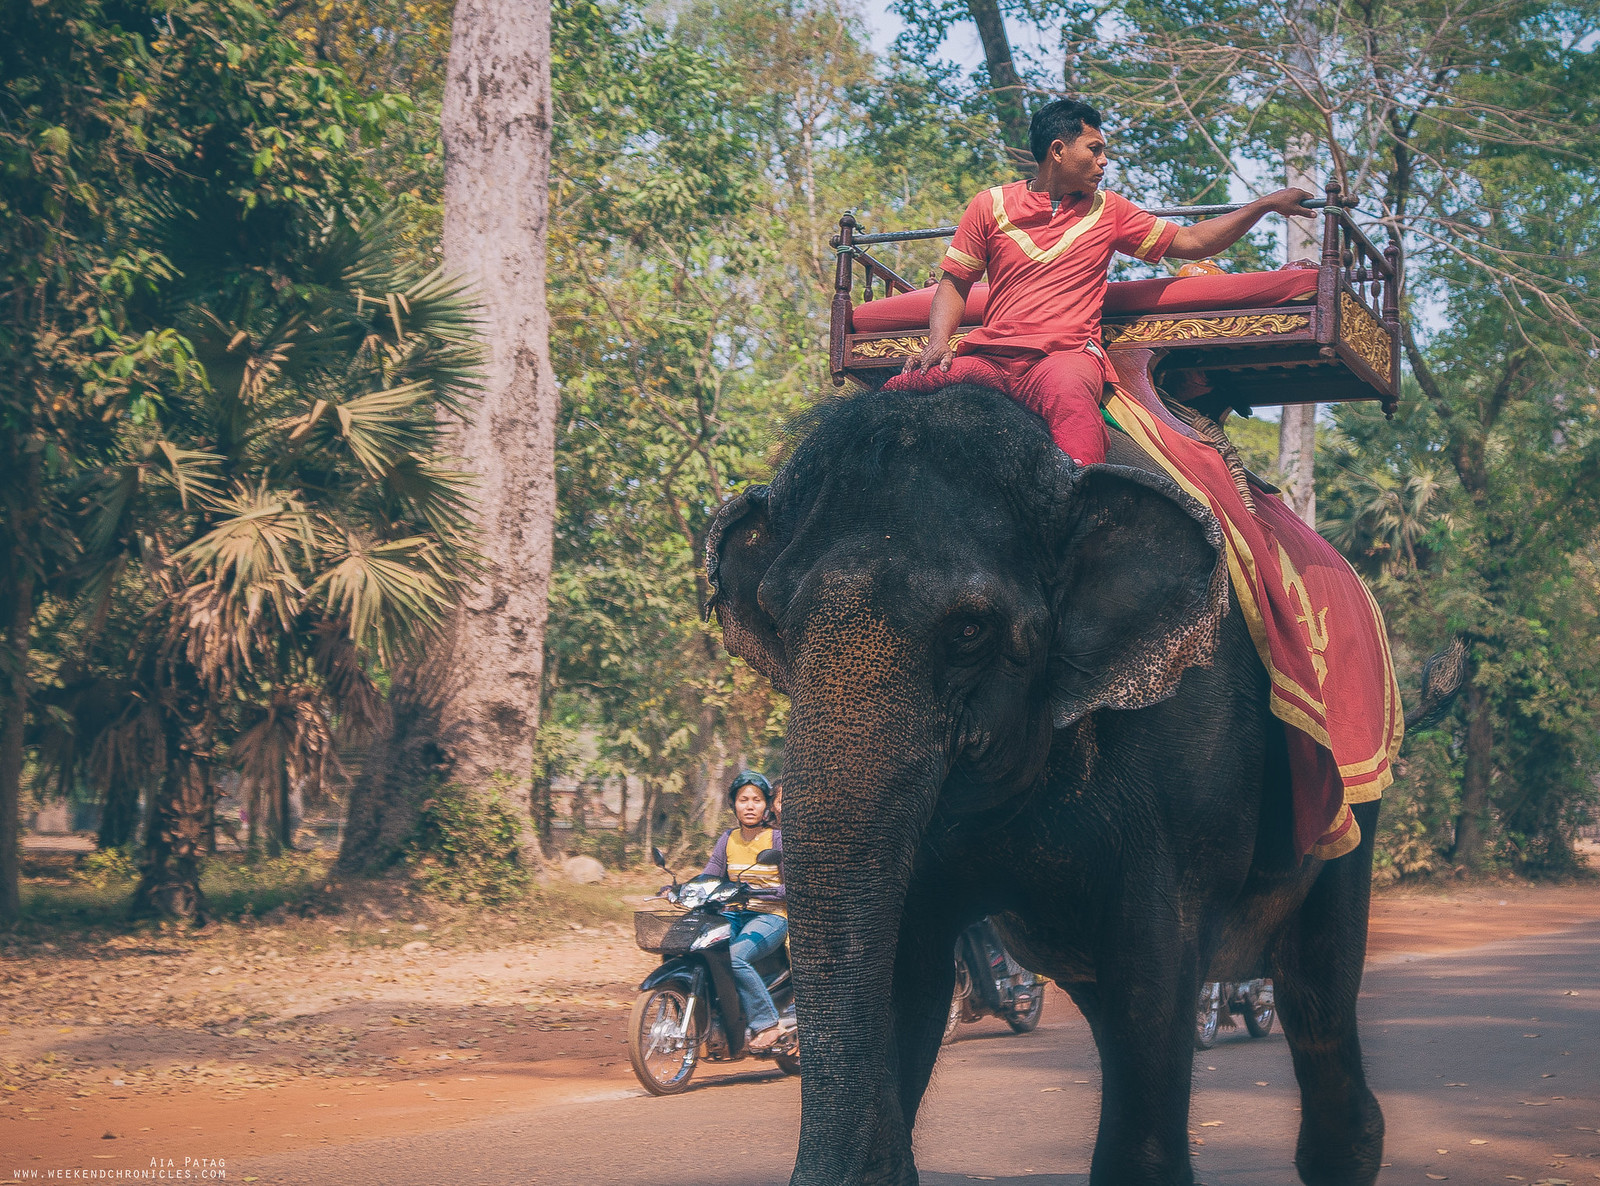 Another common sight in Siem Reap are elephants used as vehicles